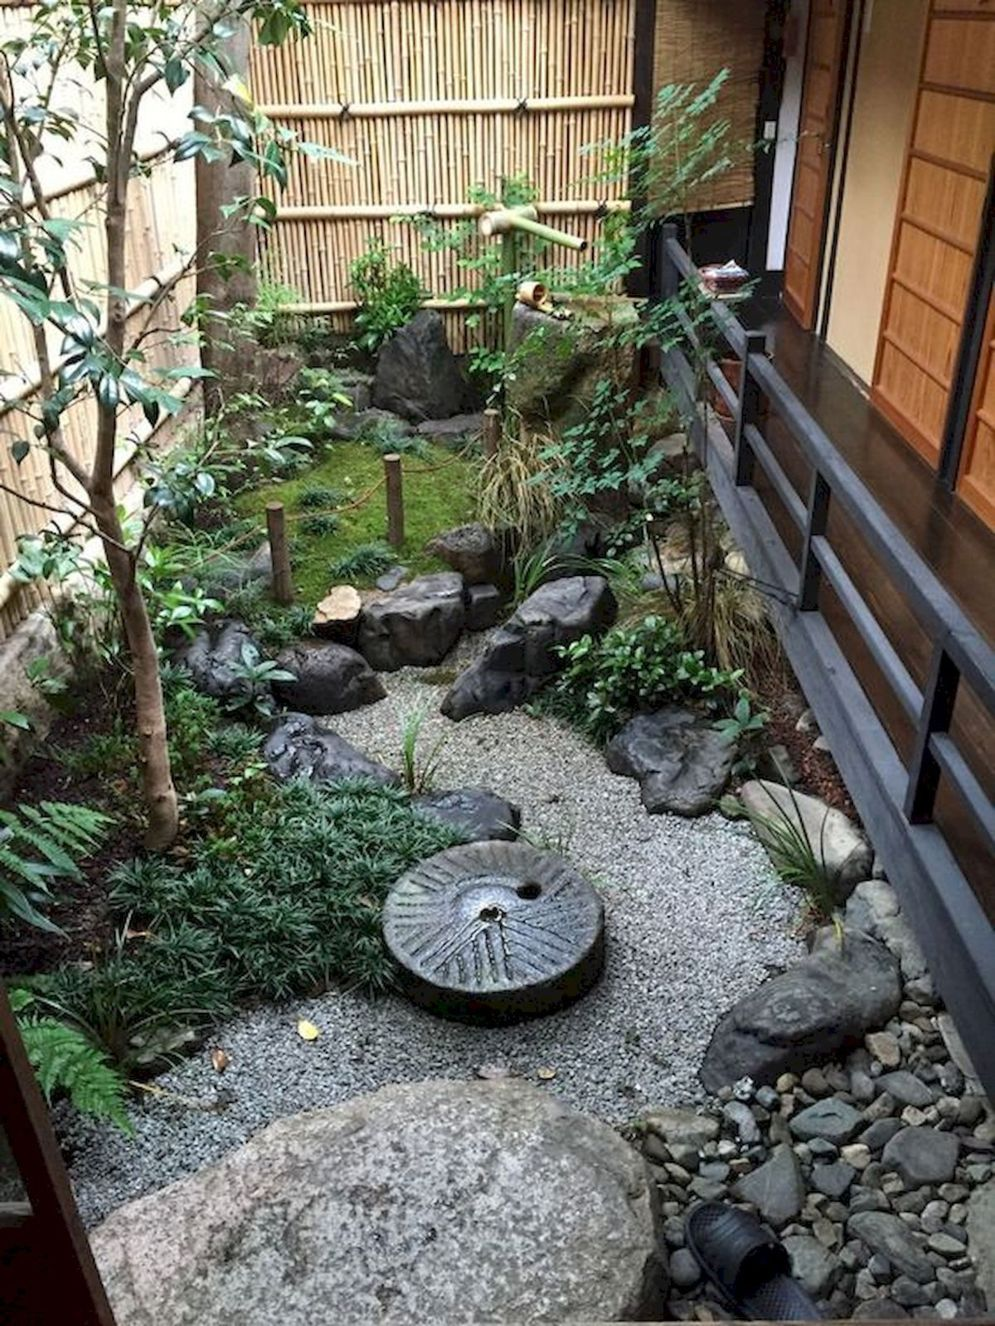 Green outdoor ideas with calming vibes from Zen garden style showing harmonious and balanced various natural elements Image 45